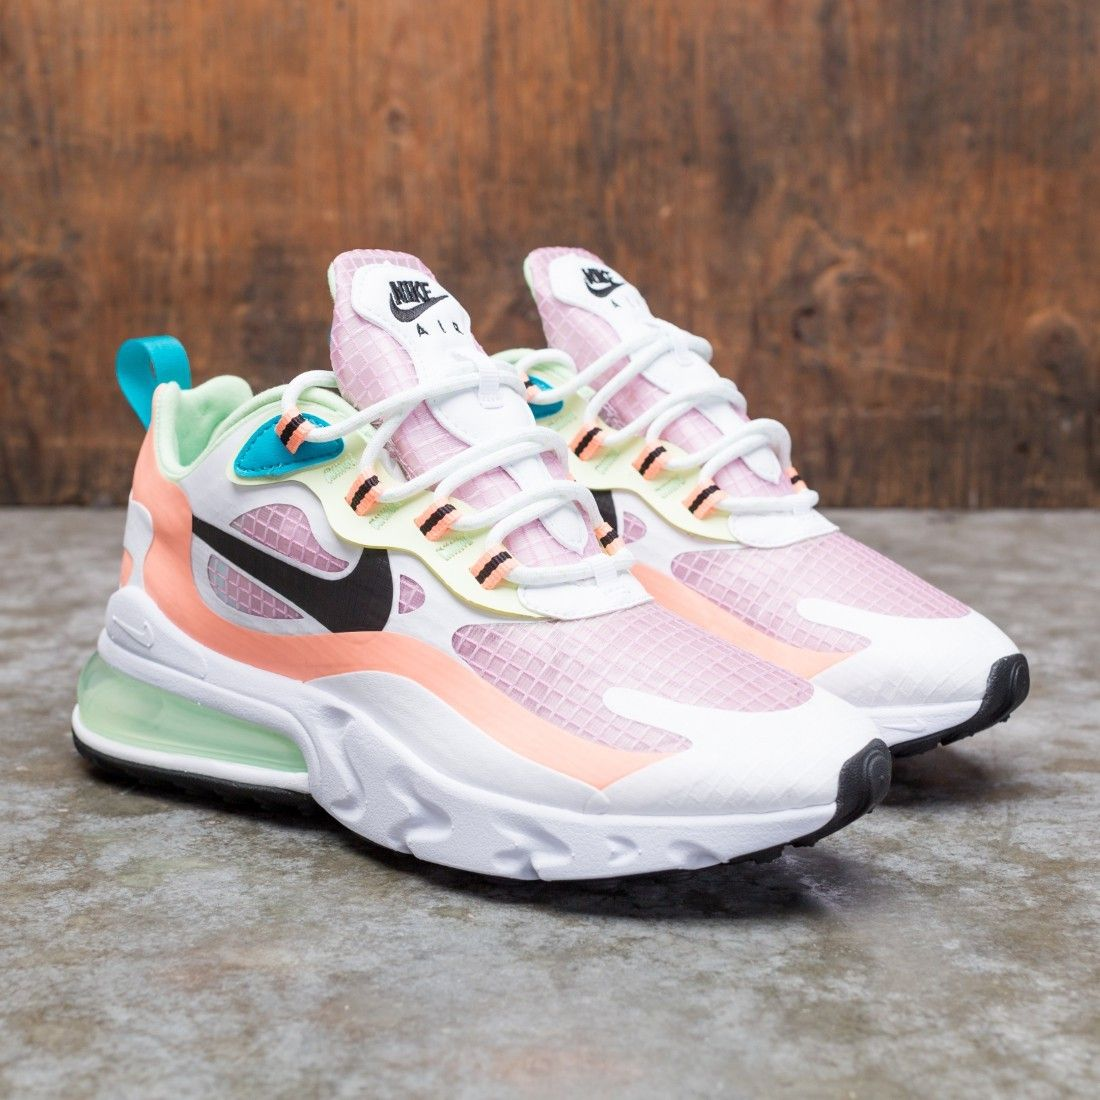 air max 270 react pink and orange